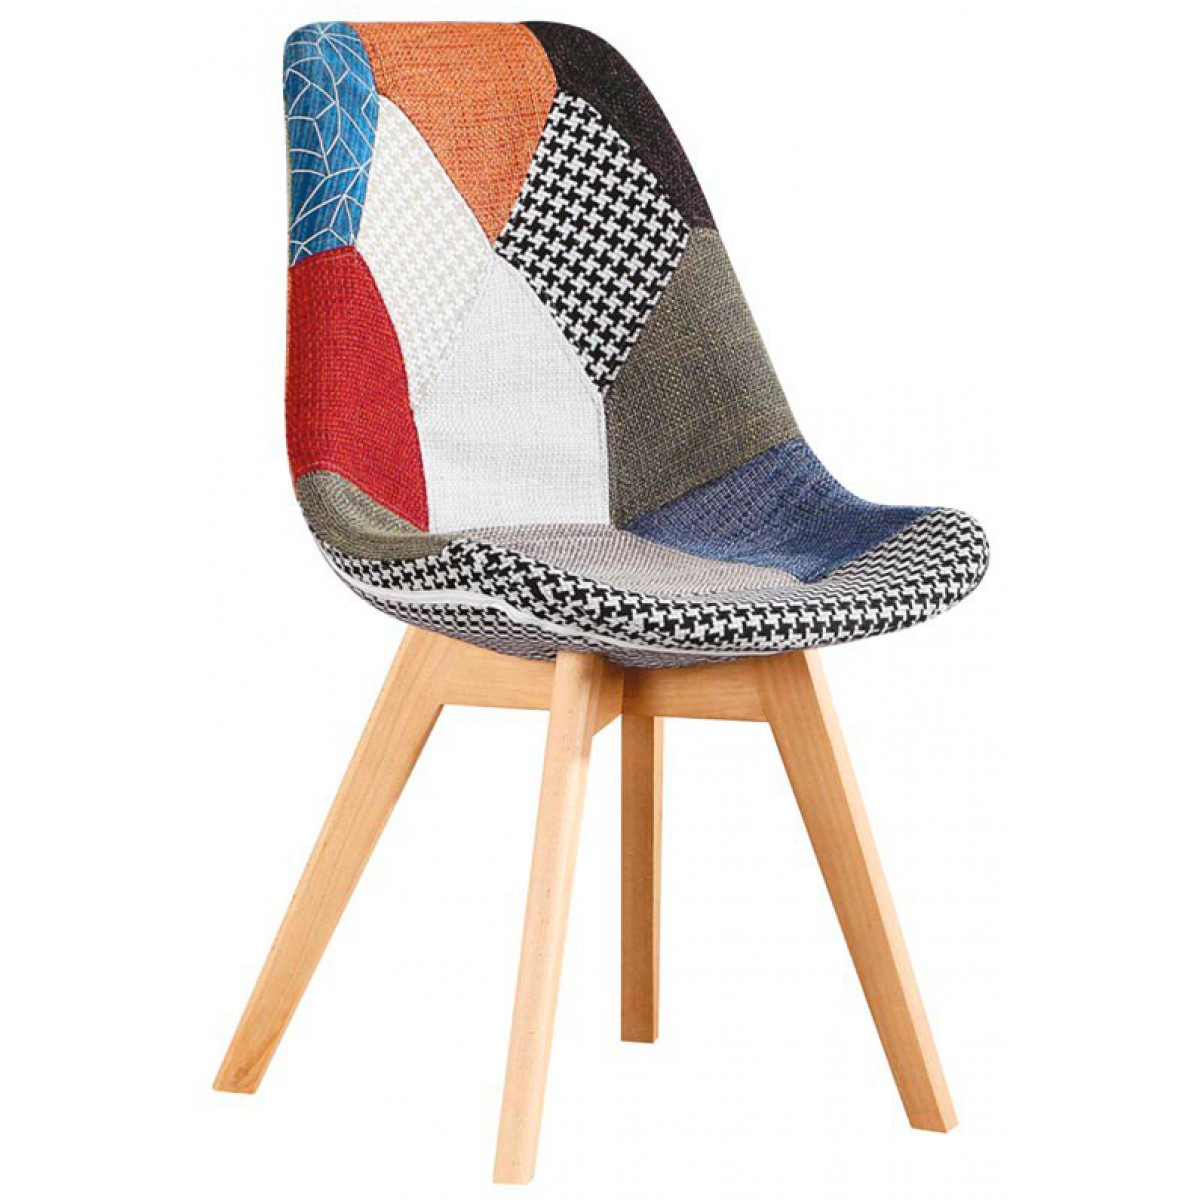 Sedia patchwork colorata in tessuto e gambe in legno per living o da ...